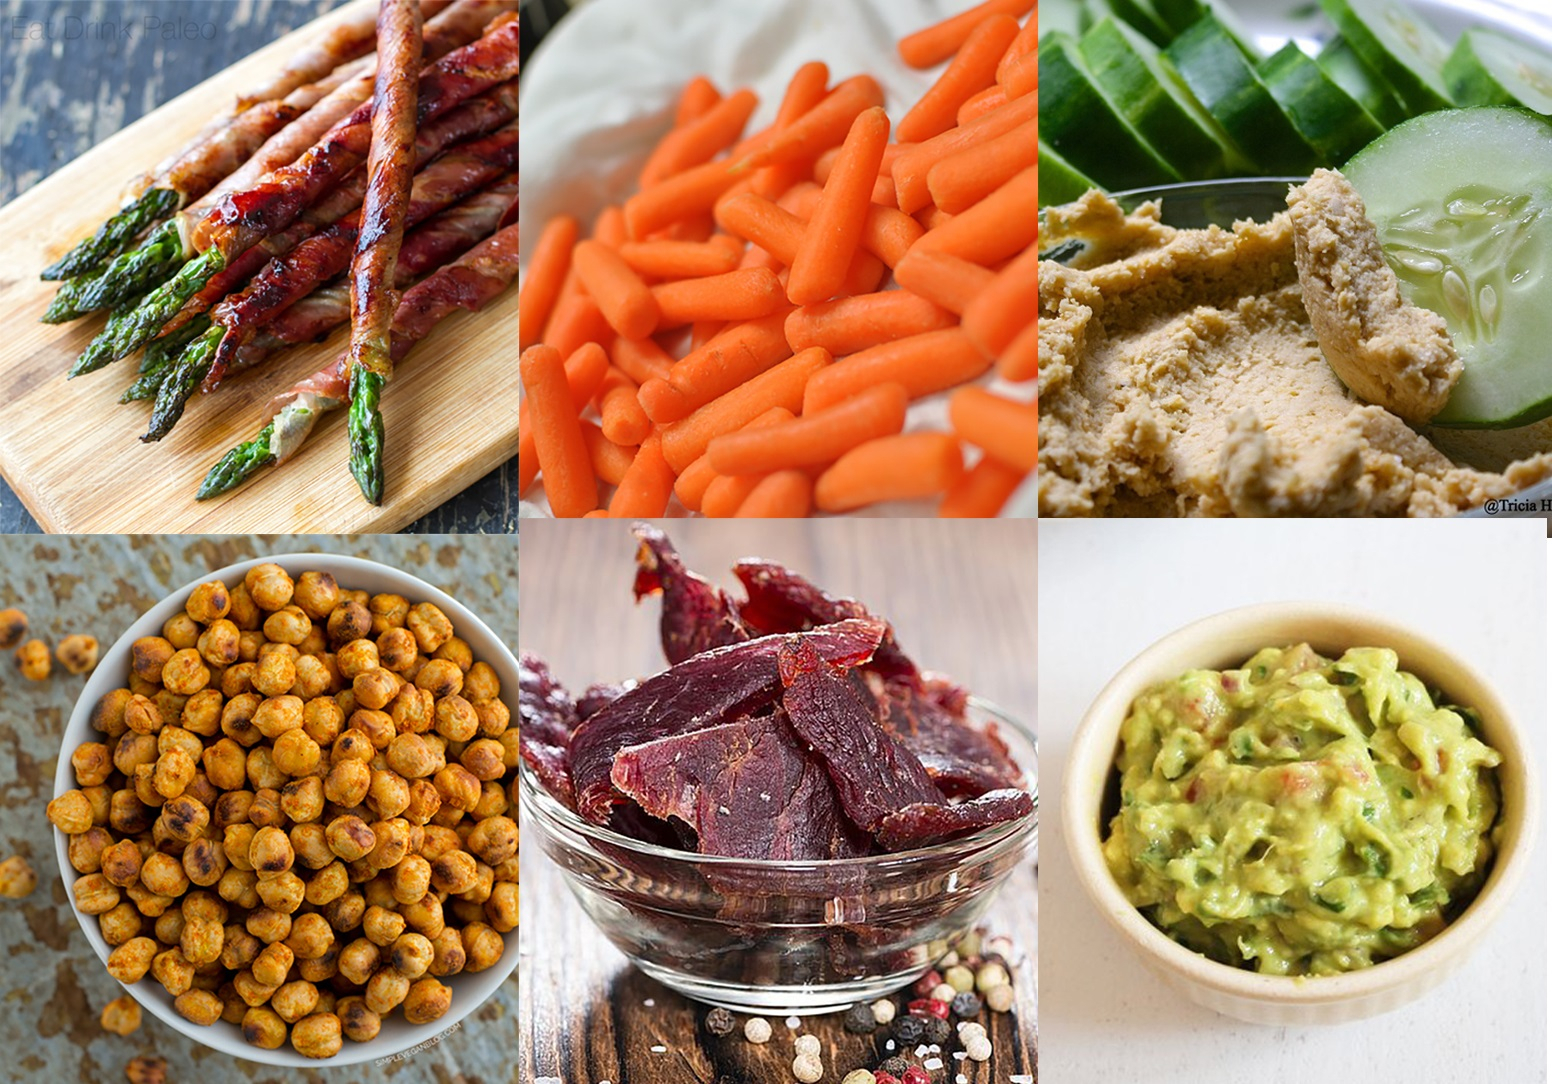 10 Wonderful Snack Ideas For Weight Loss 20 easy healthy snack ideas the best snacks for weight loss fit 2021